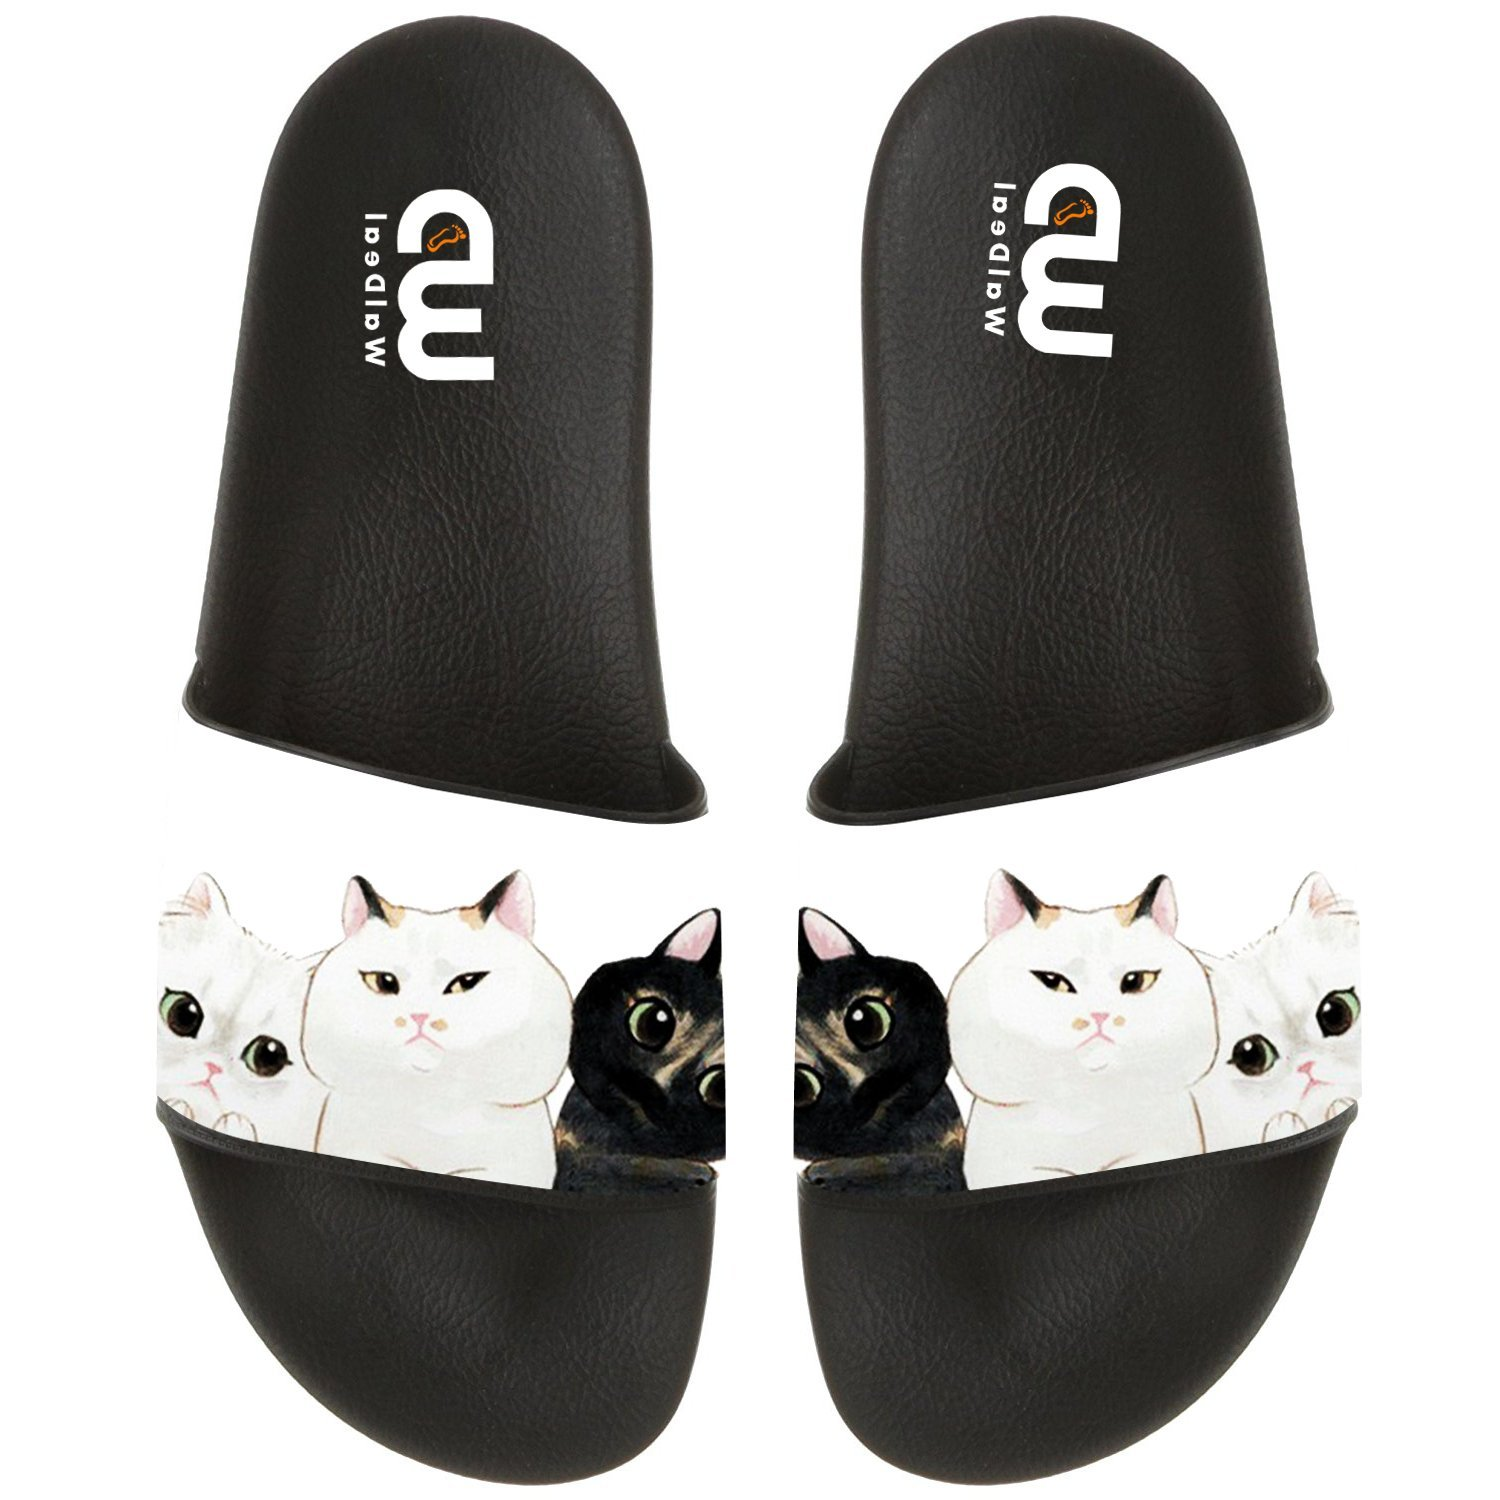 Cartoon Cute Cat Emoticon Summer Slide Slippers For Boy Girl Outdoor Beach Sandal Shoes size 12